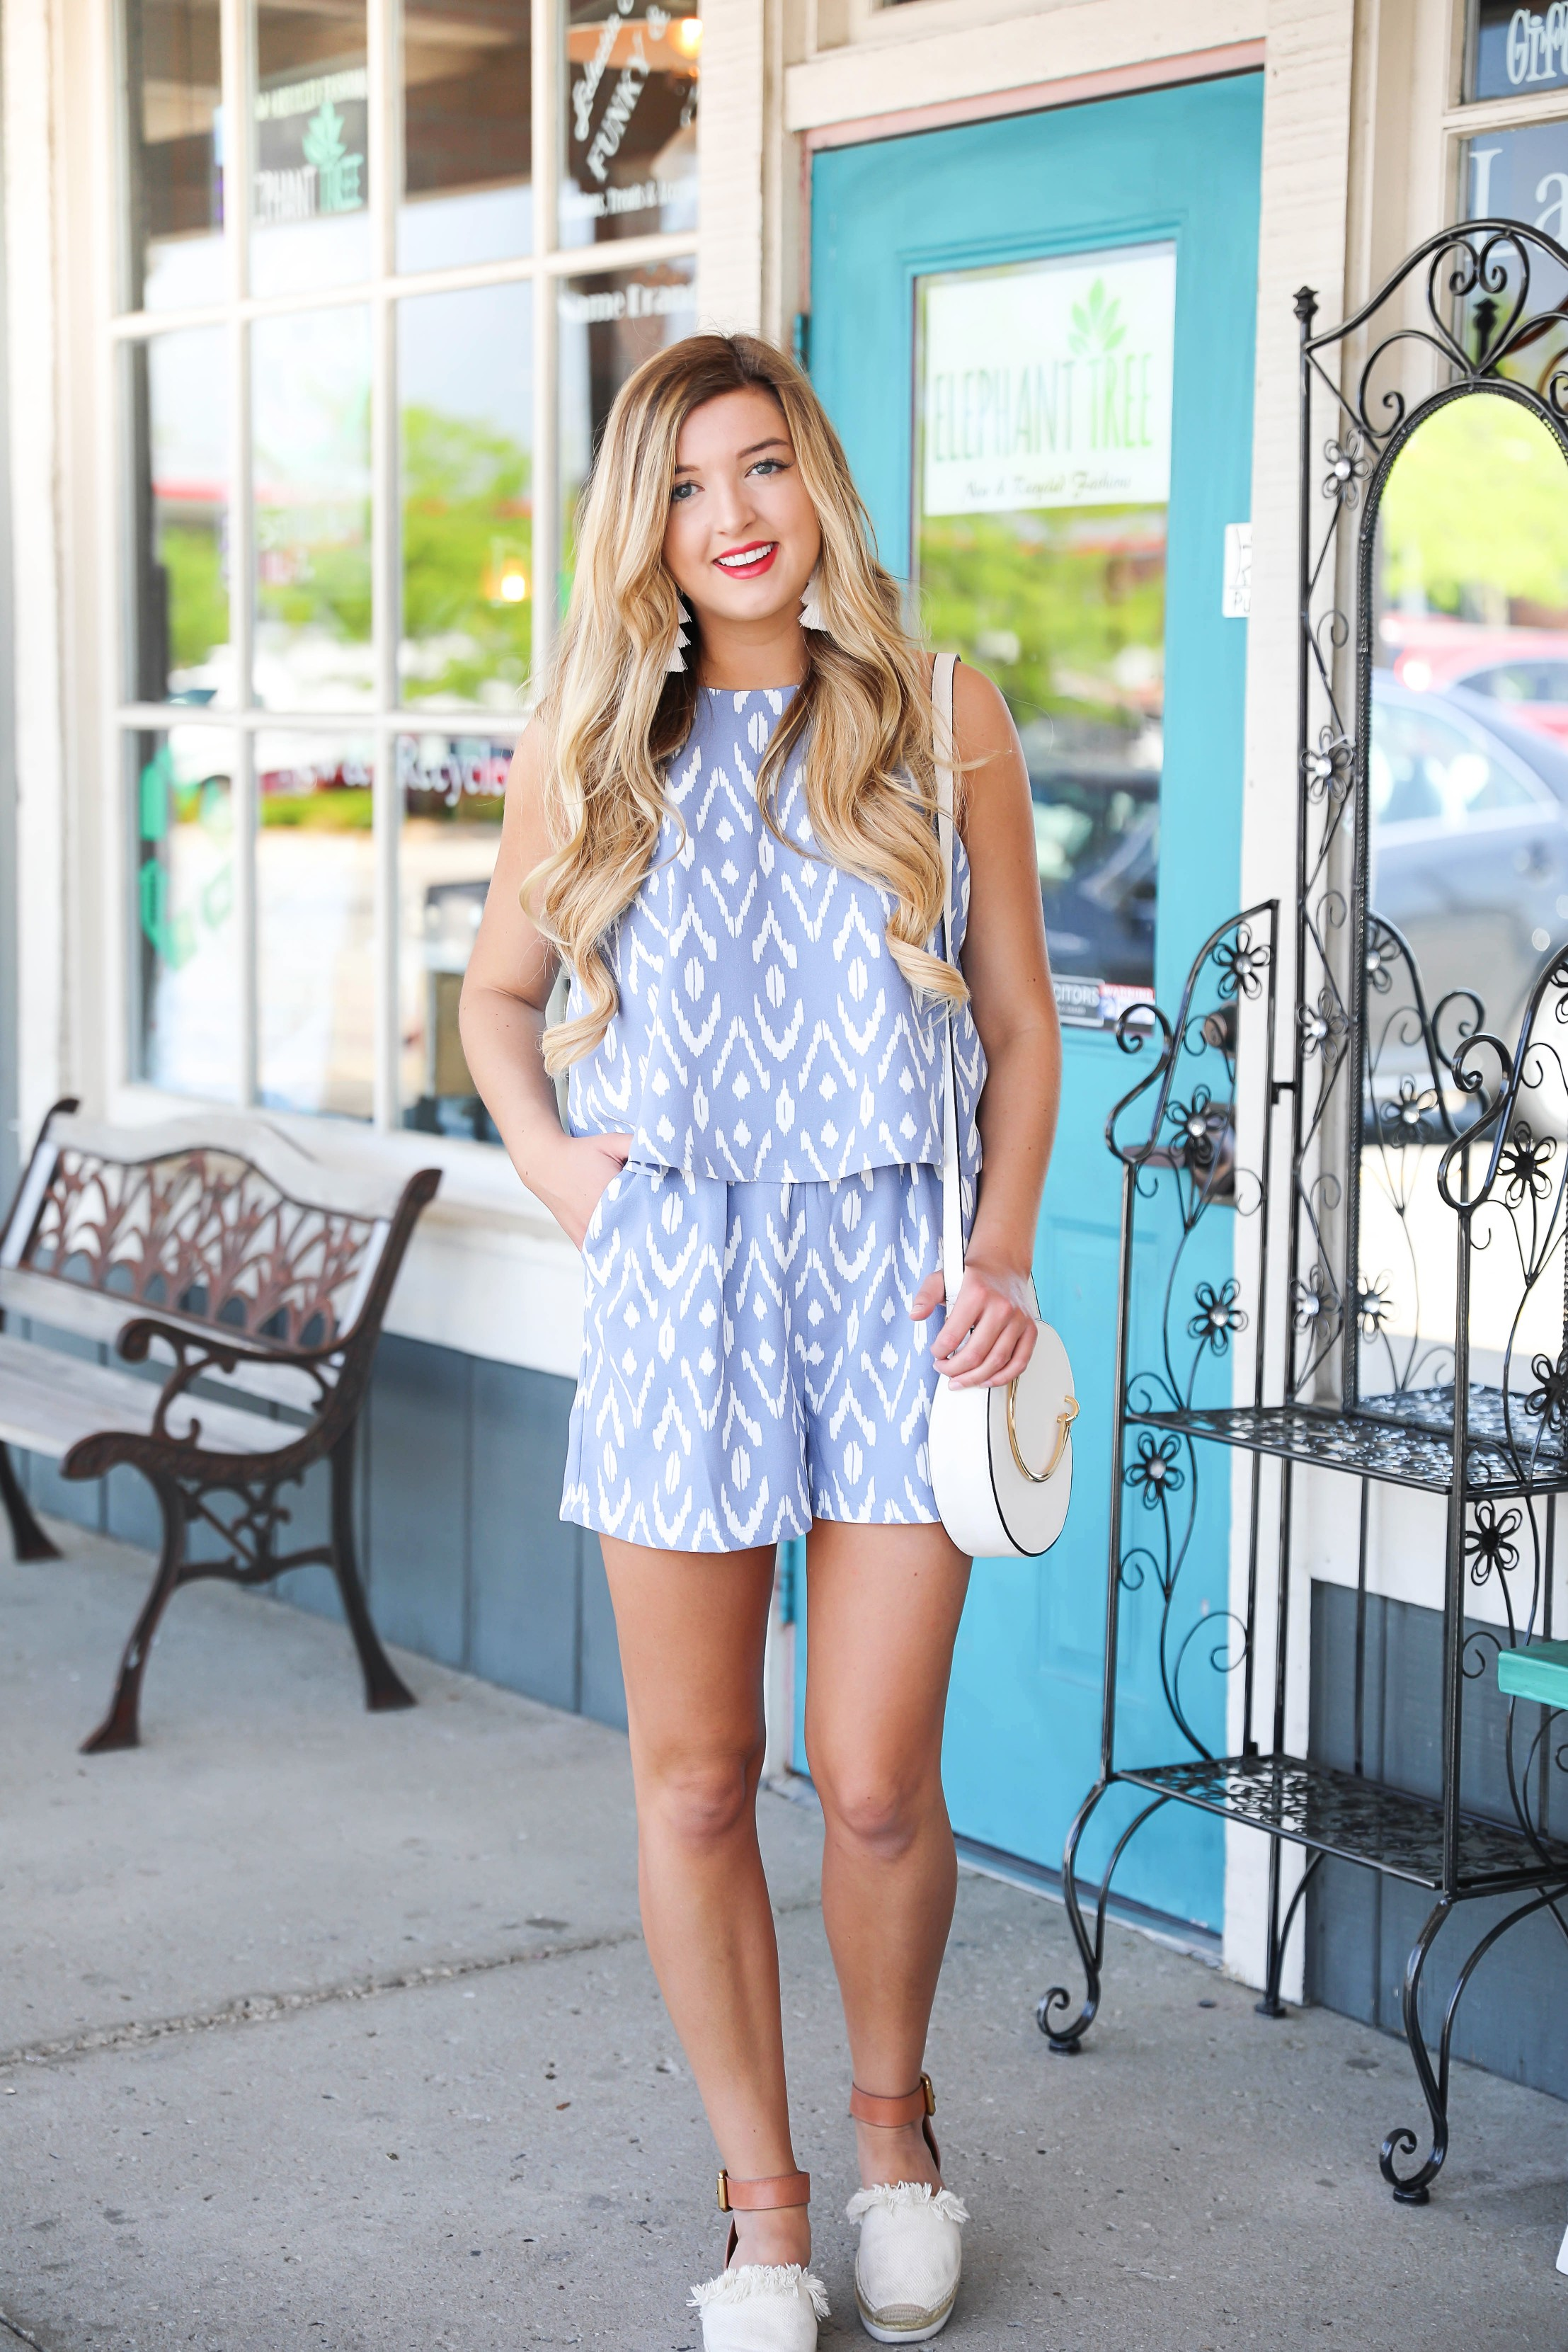 Palmer Romper in periwinkle Ikat pattern! This adorable romper is from blue door boutique! It is so perfect for spring and summer and the cute Aztec pattern makes it unique! Blue romper with blonde curly hair paired with my favorite espadrilles sandals from see by chloe! Details on fashion blog daily dose of charm by lauren lindmark